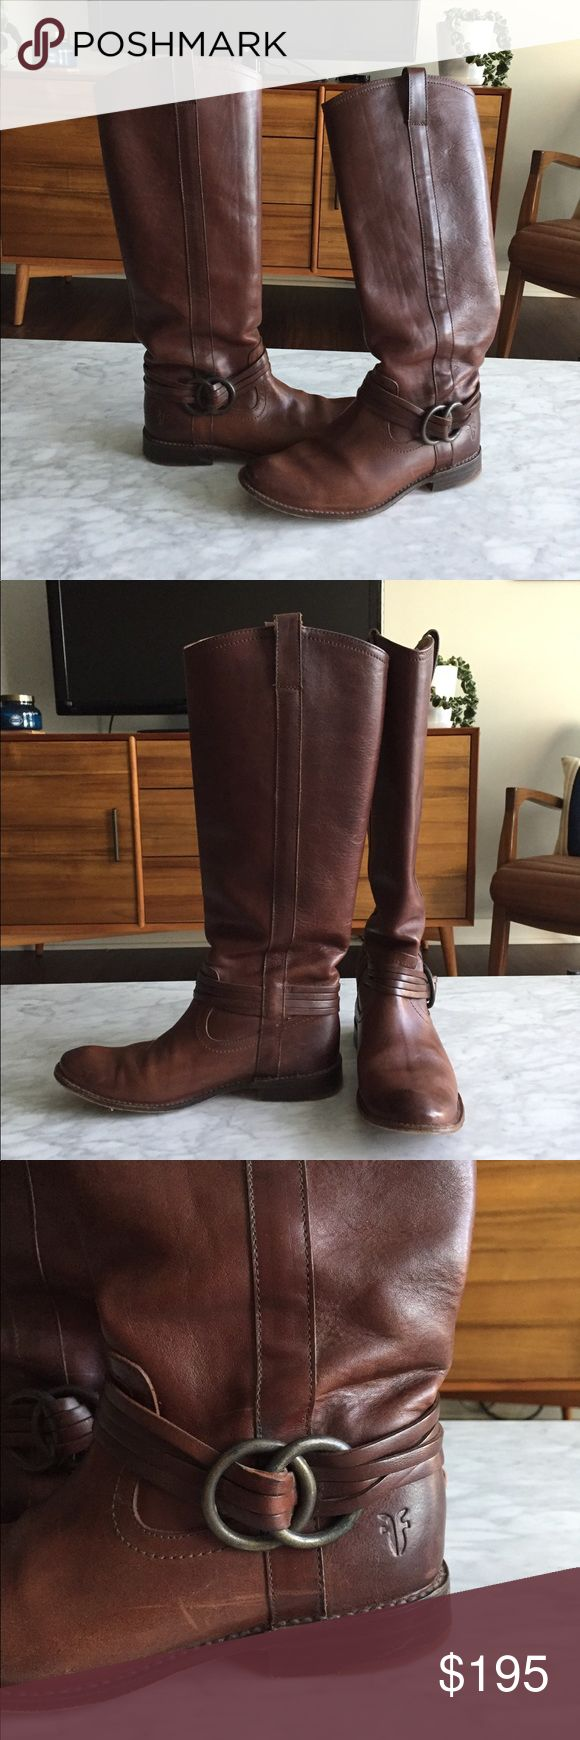 Frye Shirley Multi Strap Harness Boots Frye Shirley Multi Strap Harness Boots in brown leather. These boots are pull on and have no zipper, and have antiqued metal rings at the ankle. They have a low stacked heel. Some light scratches but overall in great shape. Does not include box. No trades, but willing to accept offers. Frye Shoes